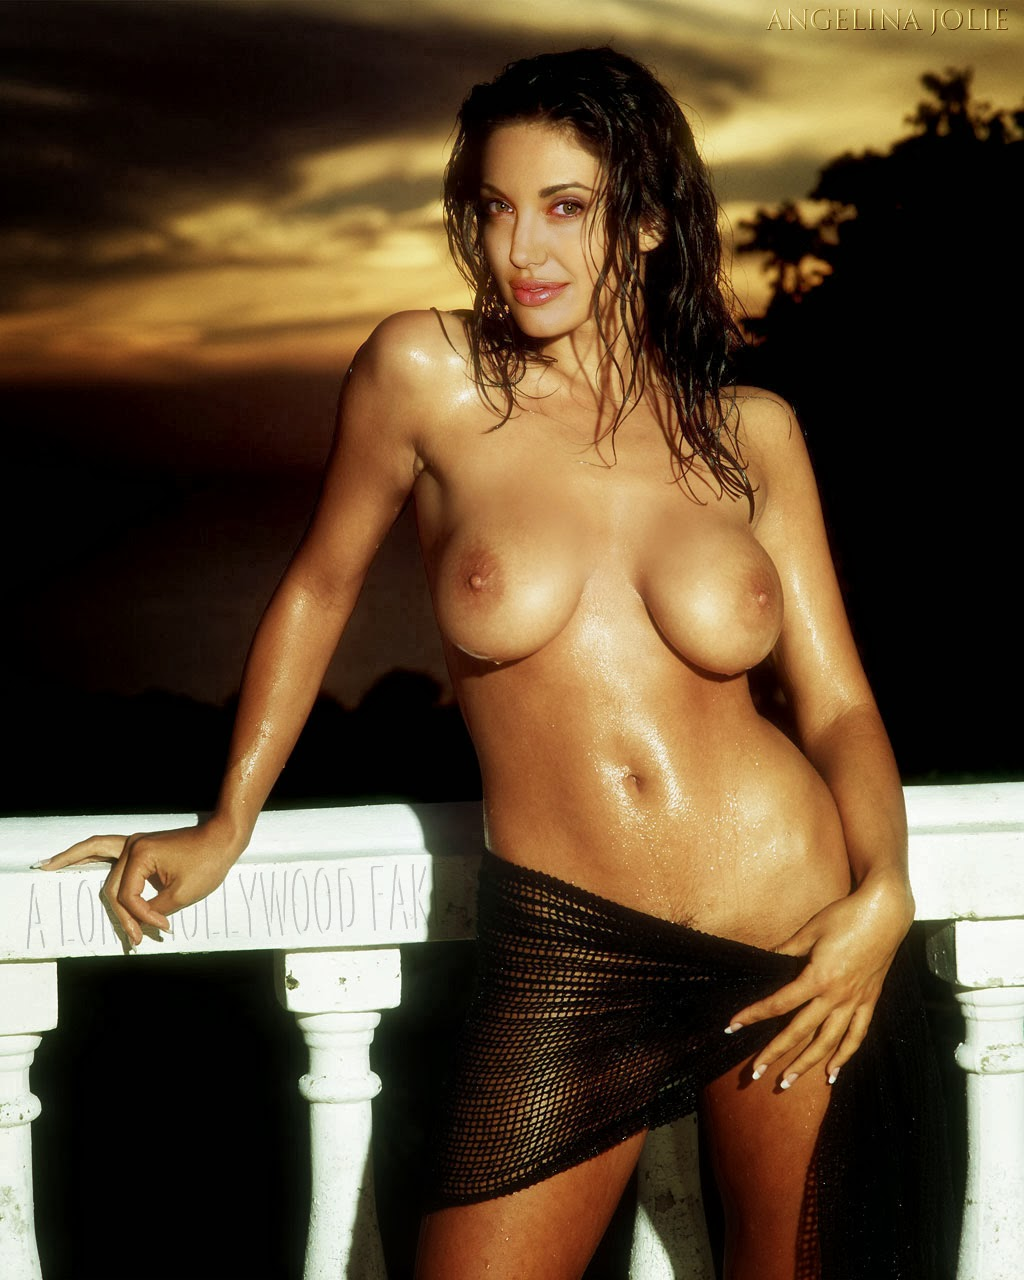 Free nude angelina jolie pictures